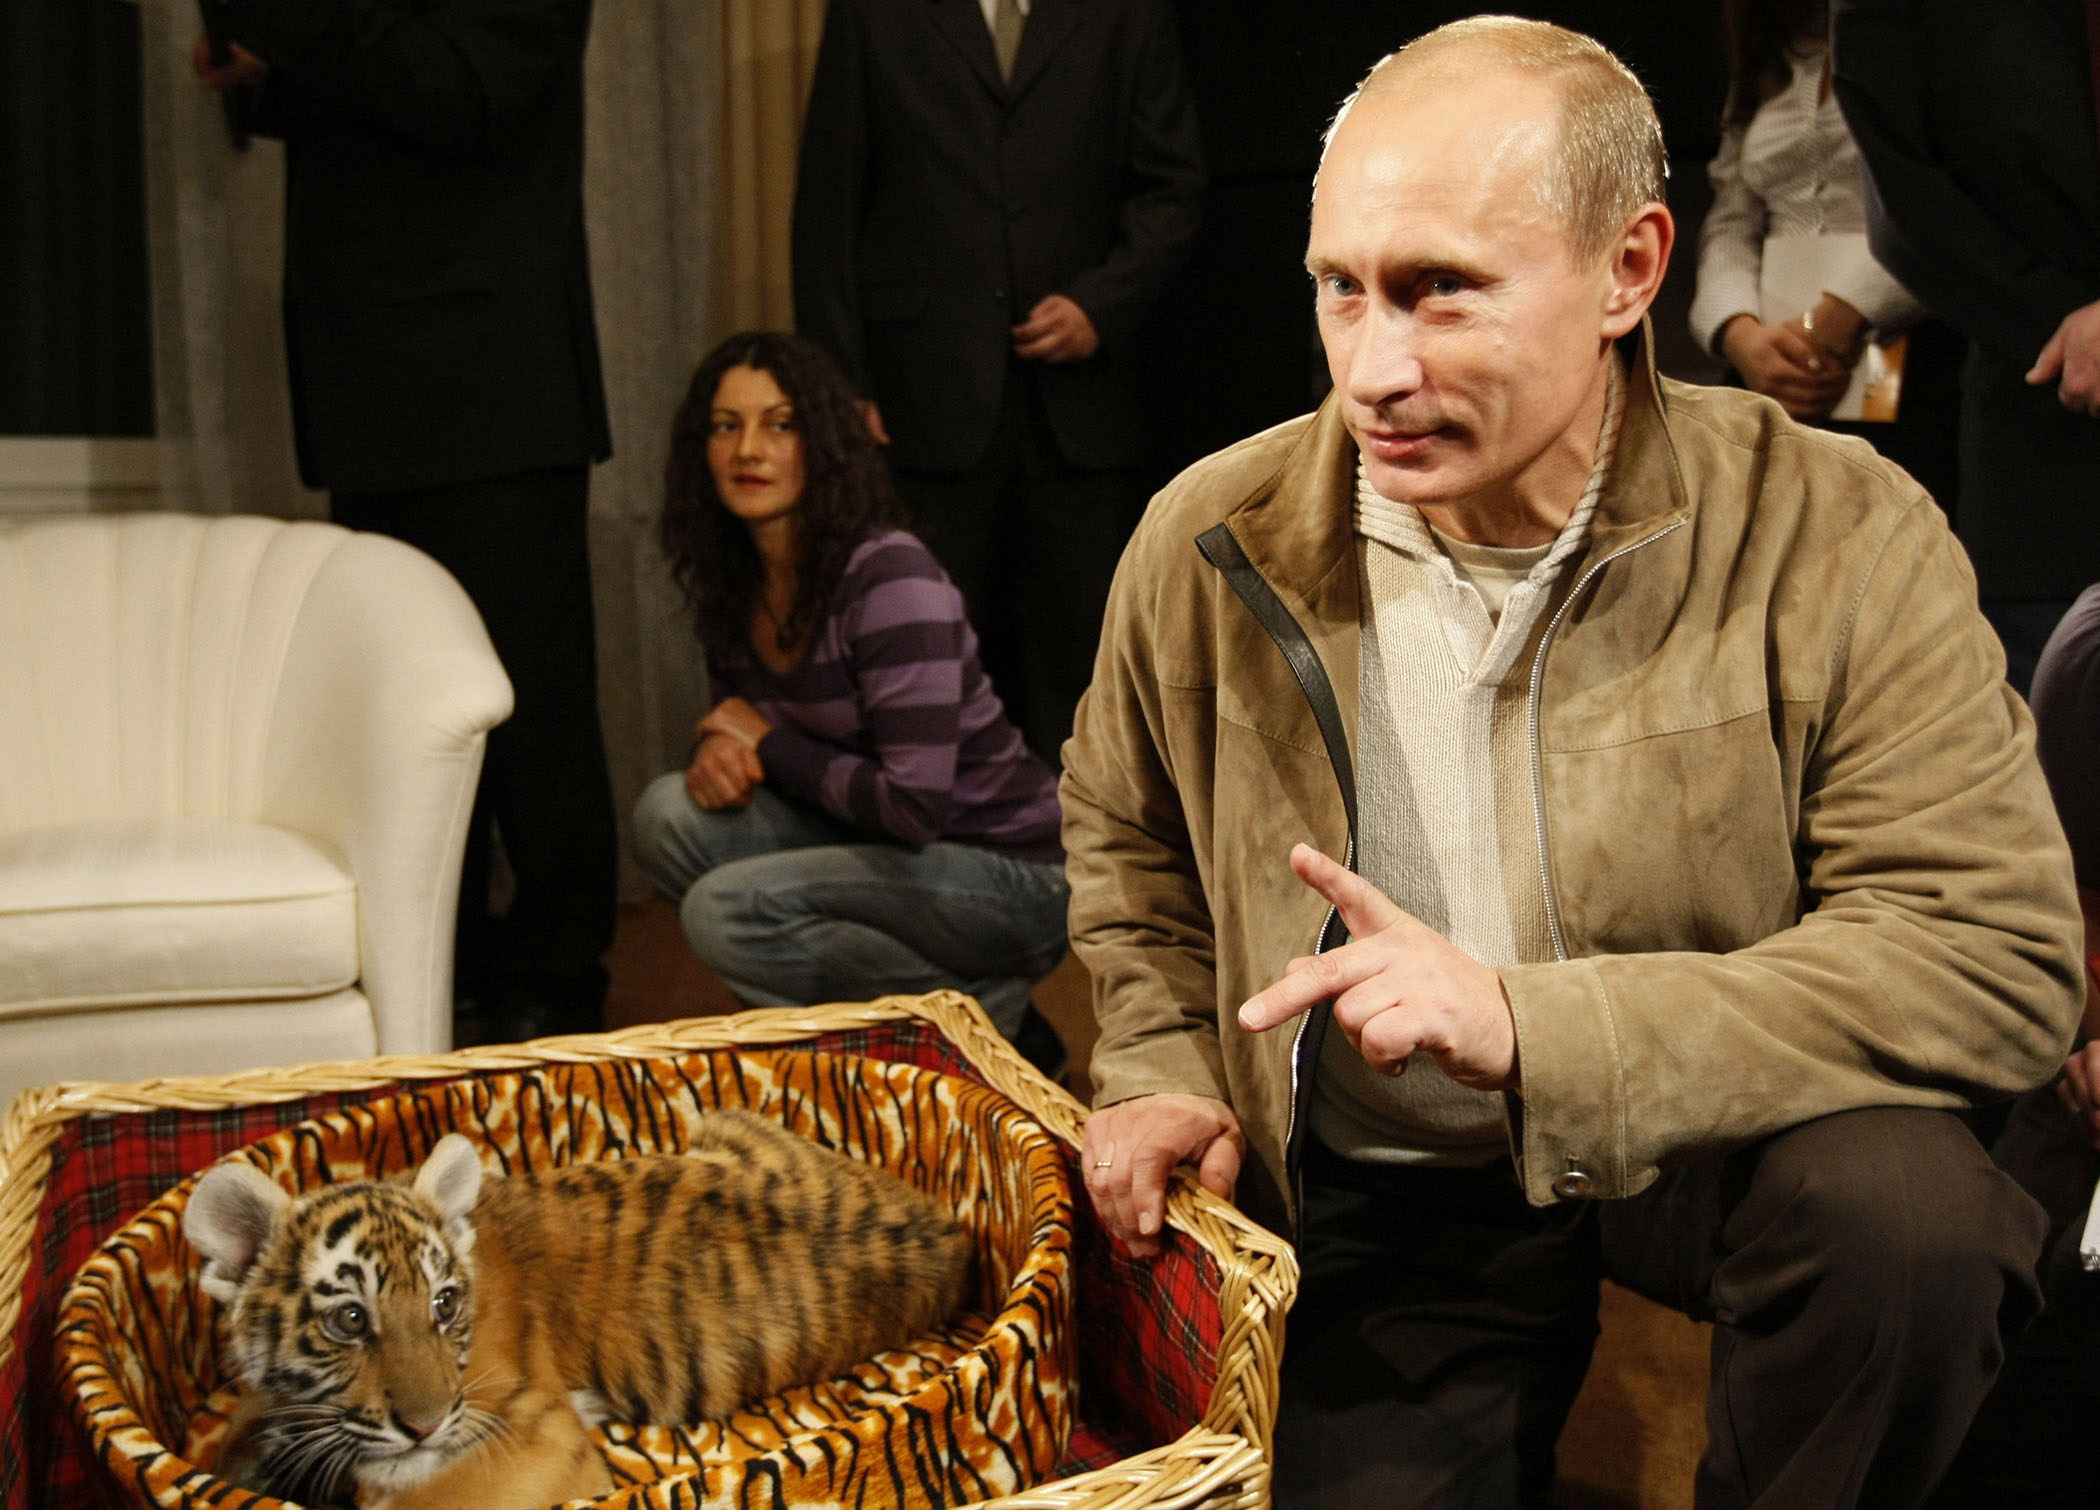 Vladimir Putin S Net Worth Is He The World S Richest Man Money